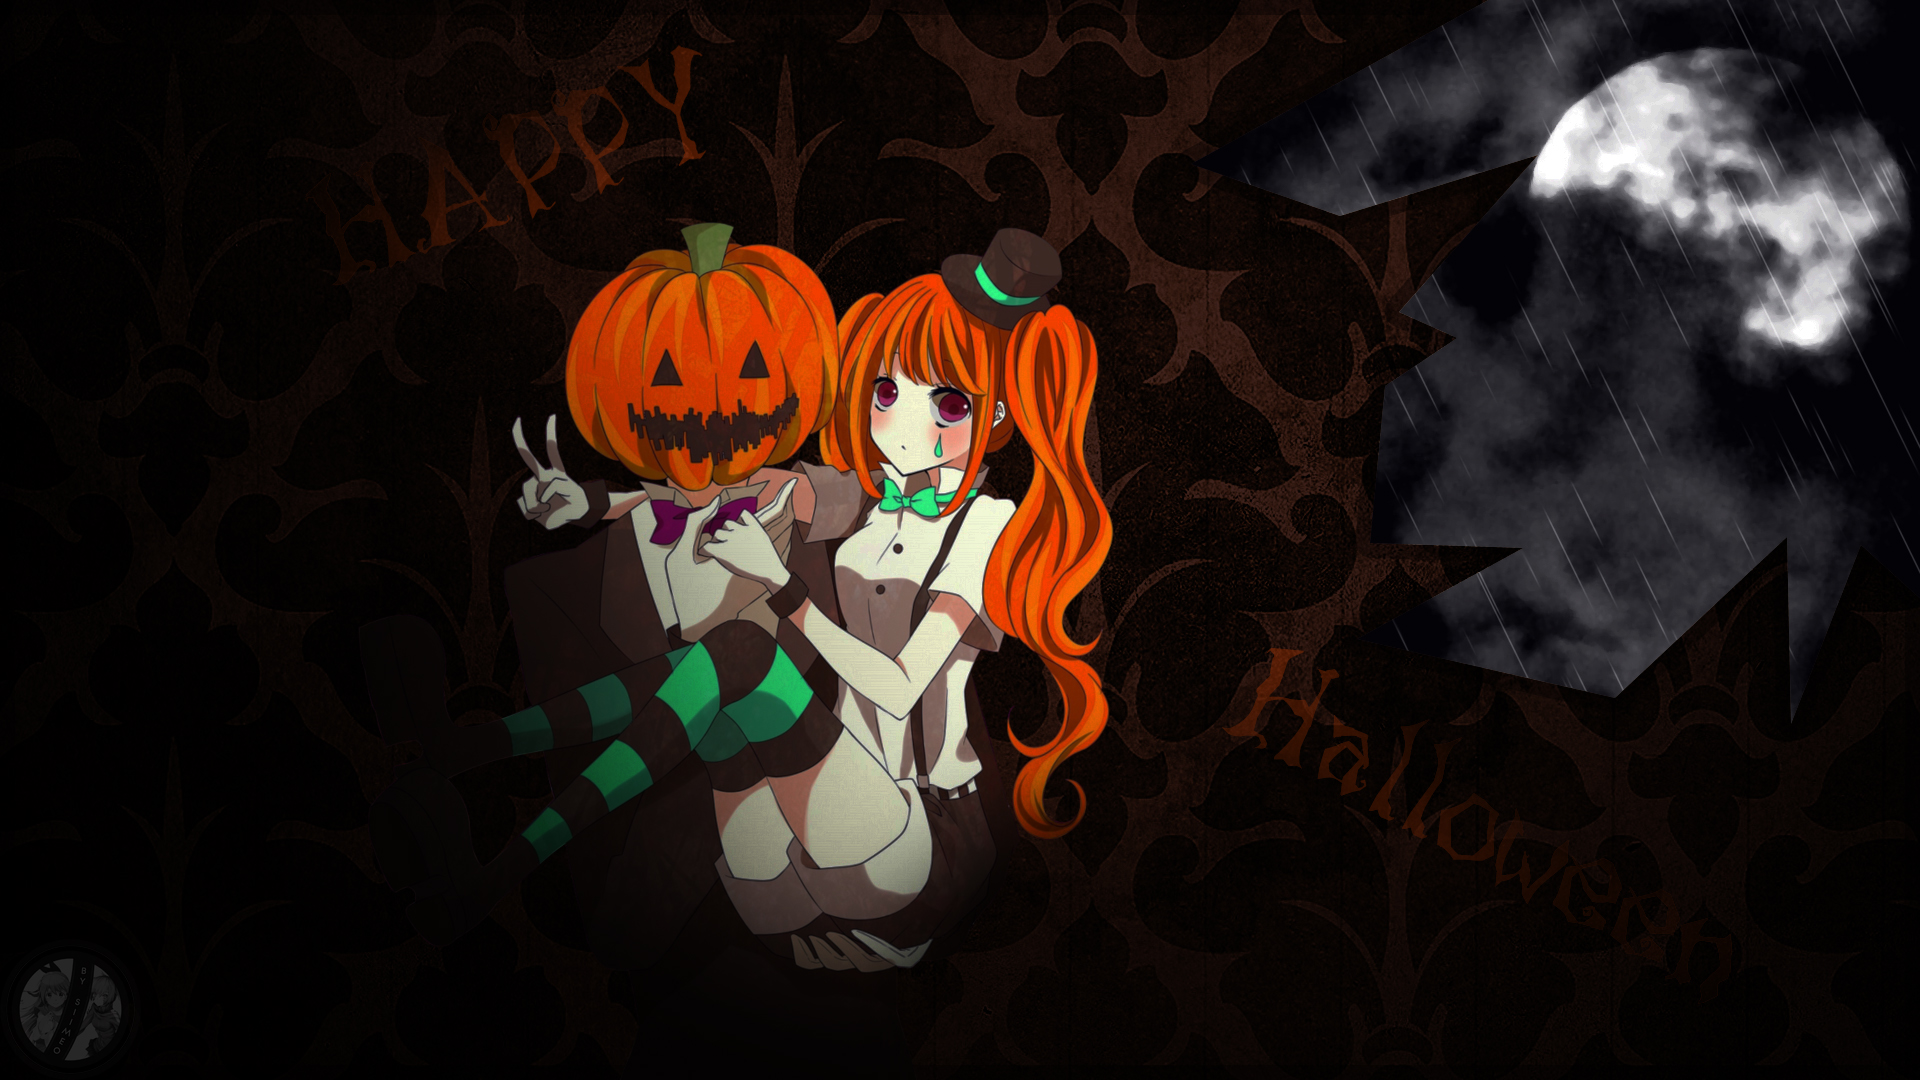 happy halloween anime wallpaper by siimeo on deviantart